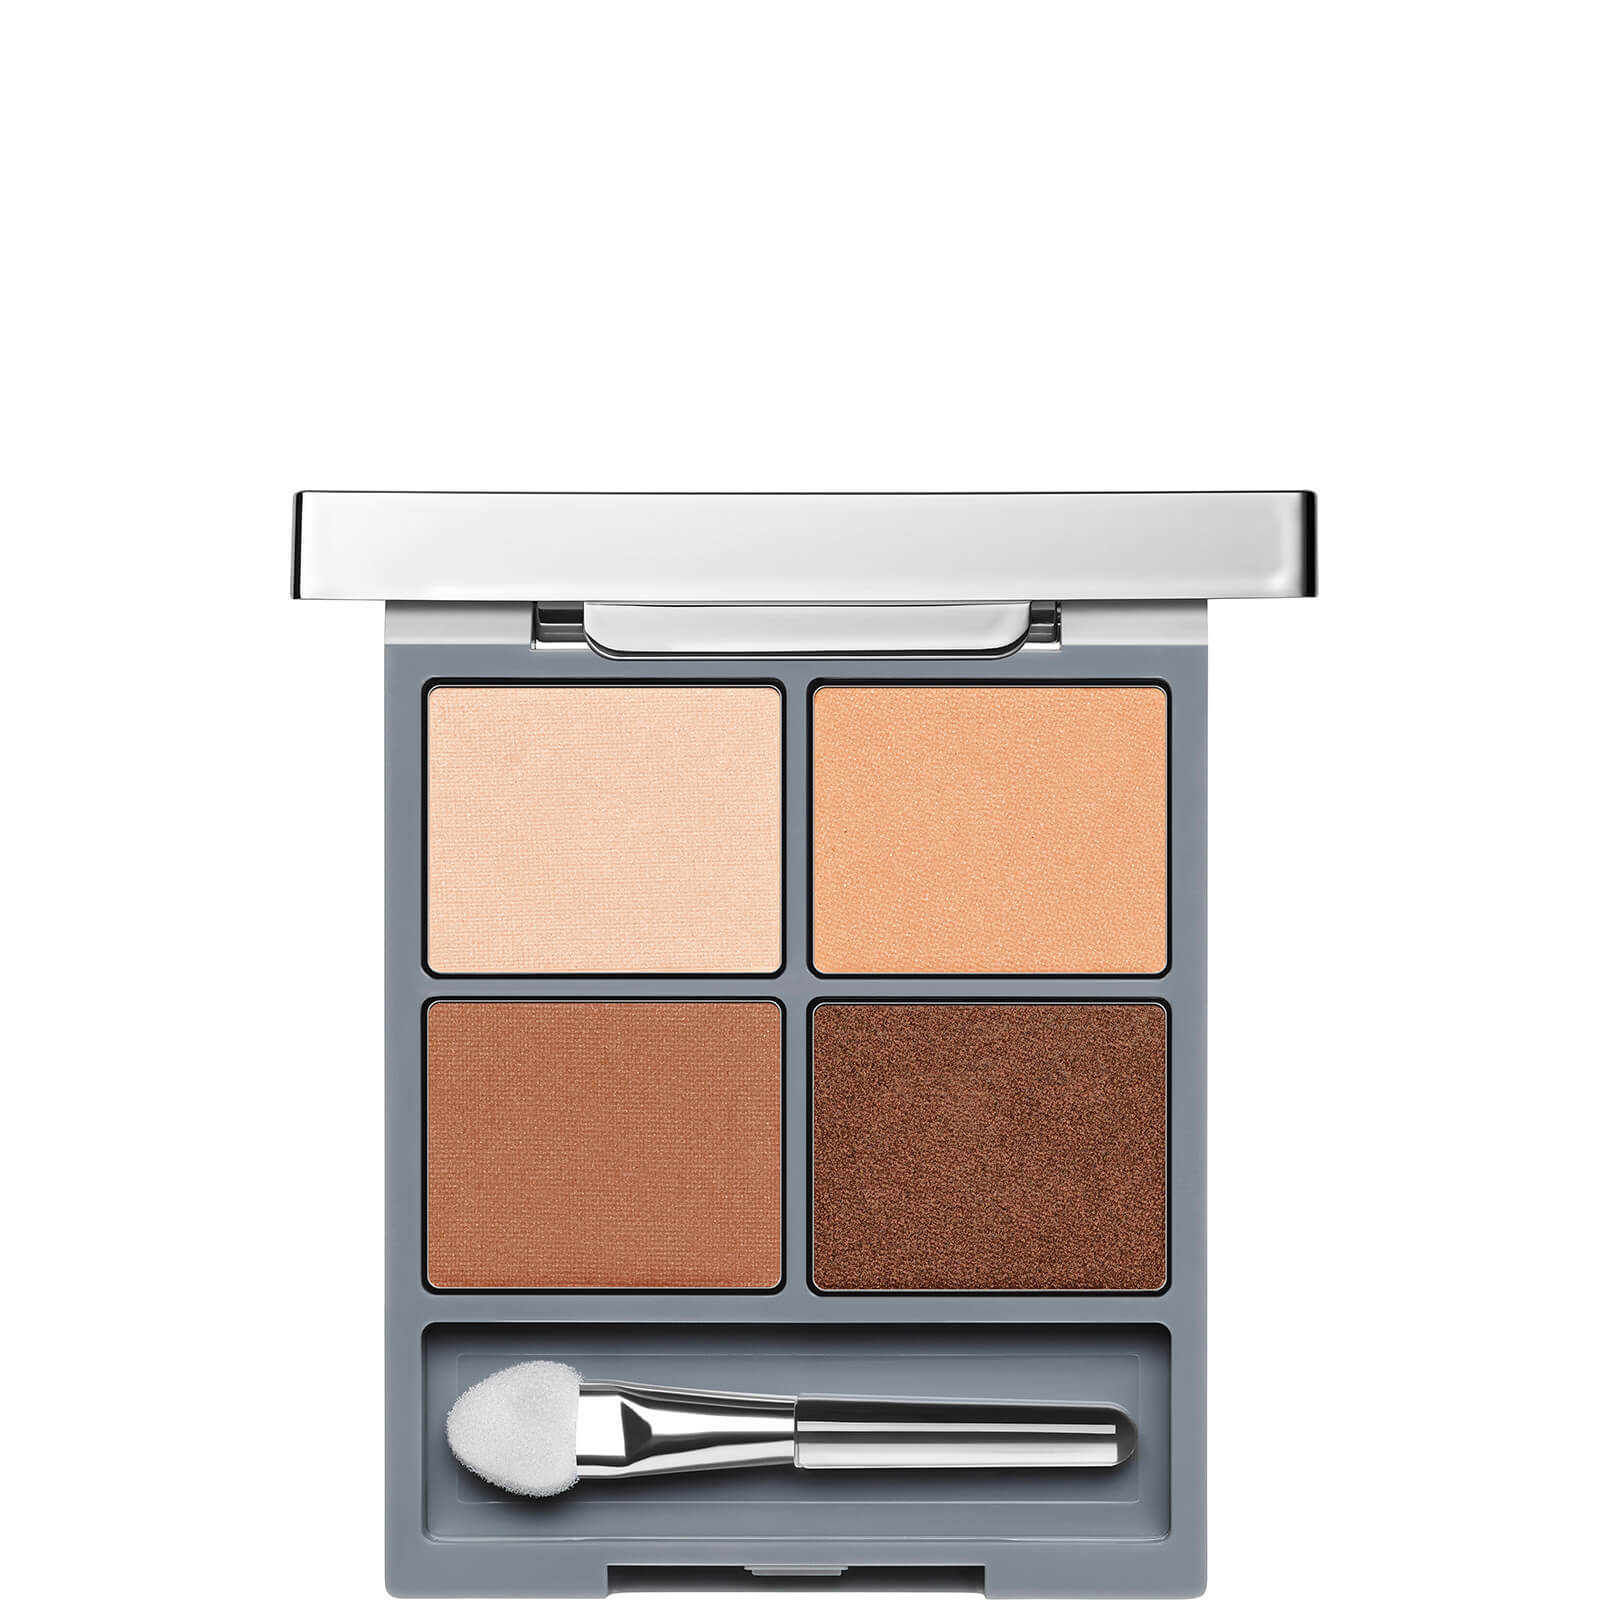 Physicians Formula The Healthy Eyeshadow 6g (Various Shades) - Classic Nude